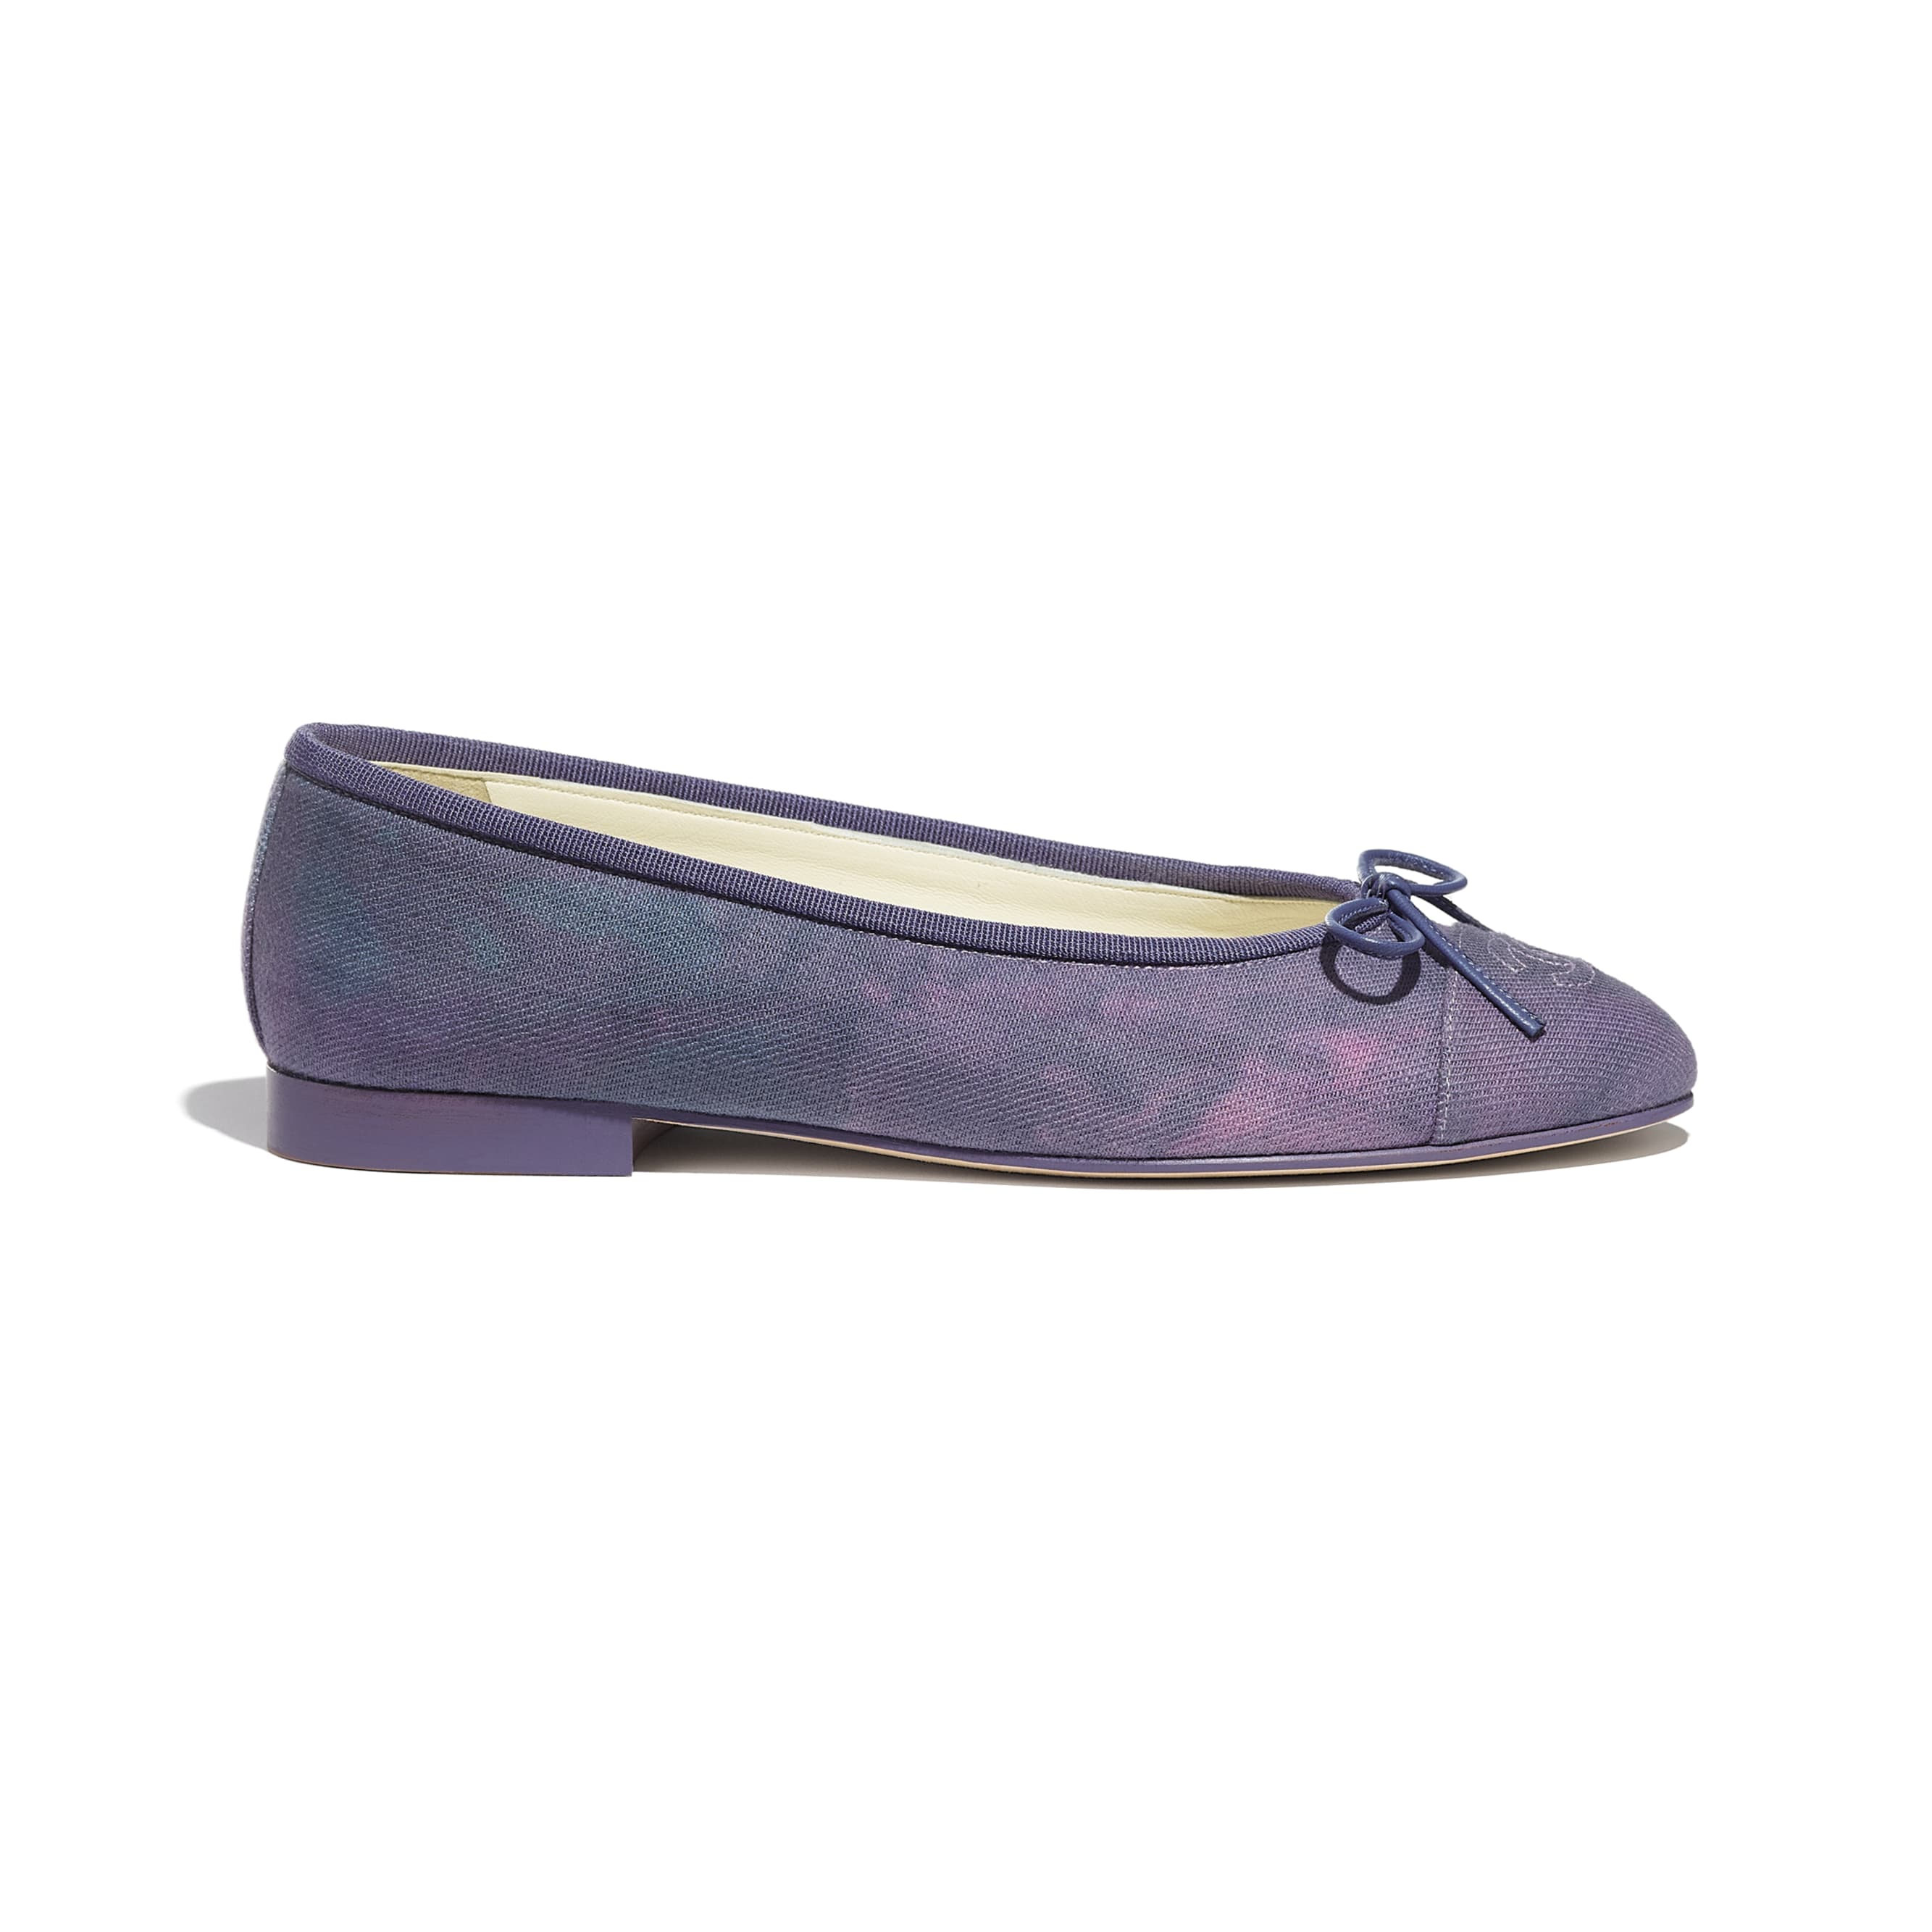 Flats - Purple, Blue & Pink - Fabric - CHANEL - Default view - see standard sized version